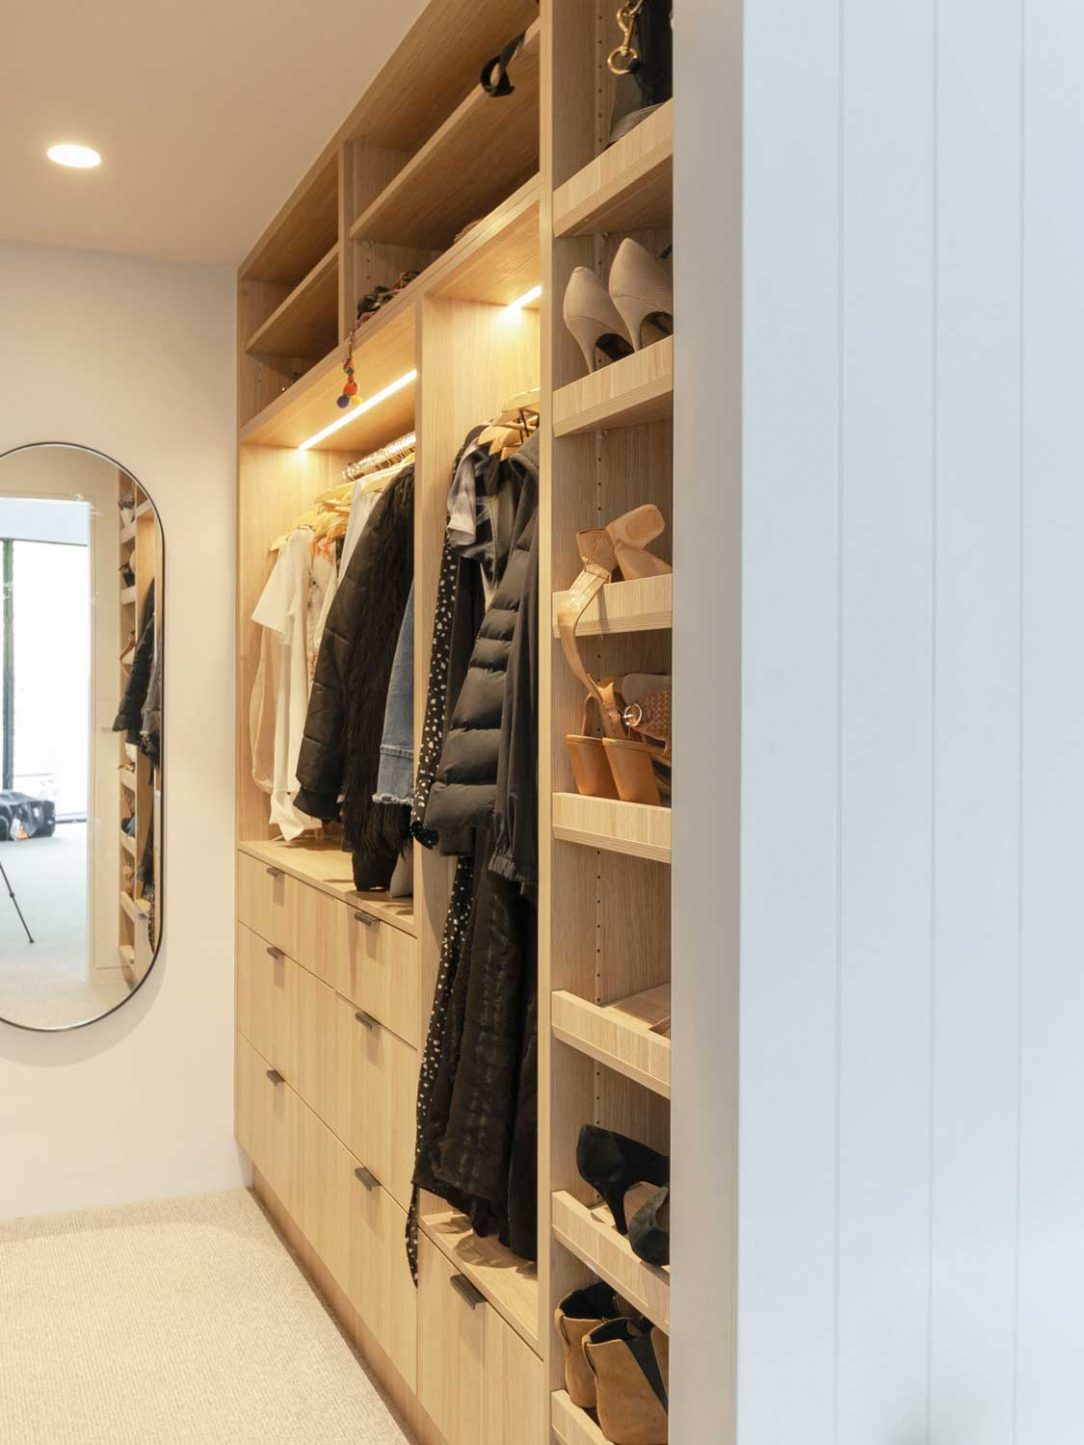 Custom wardrobe design by Premier Kitchens Australia